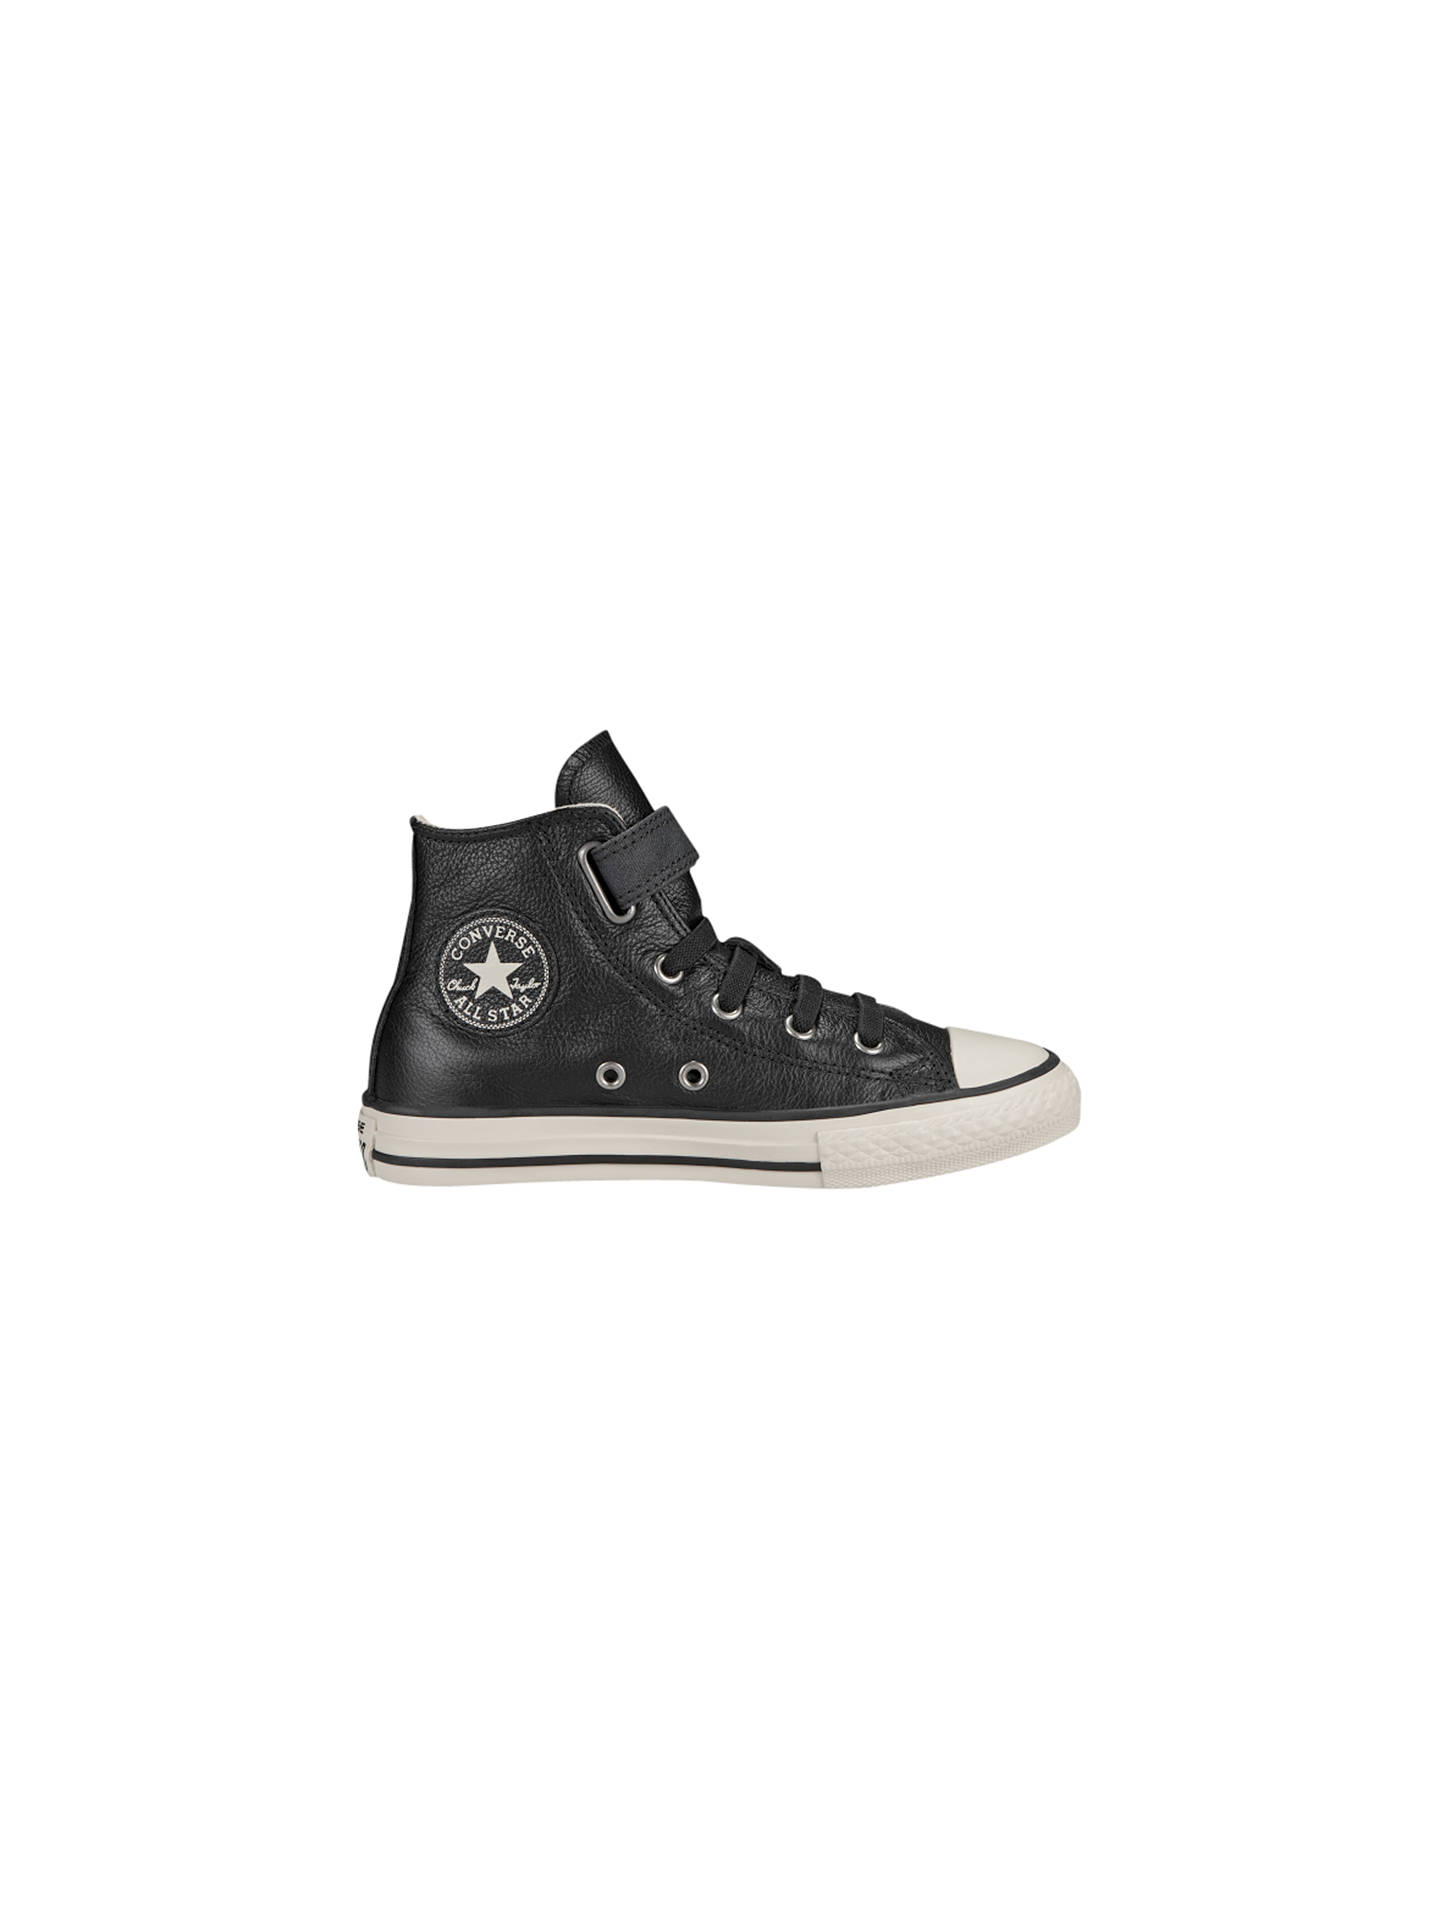 d0ee222e4a14 Converse Chuck Taylor All Star High-Top Leather Trainers at John ...